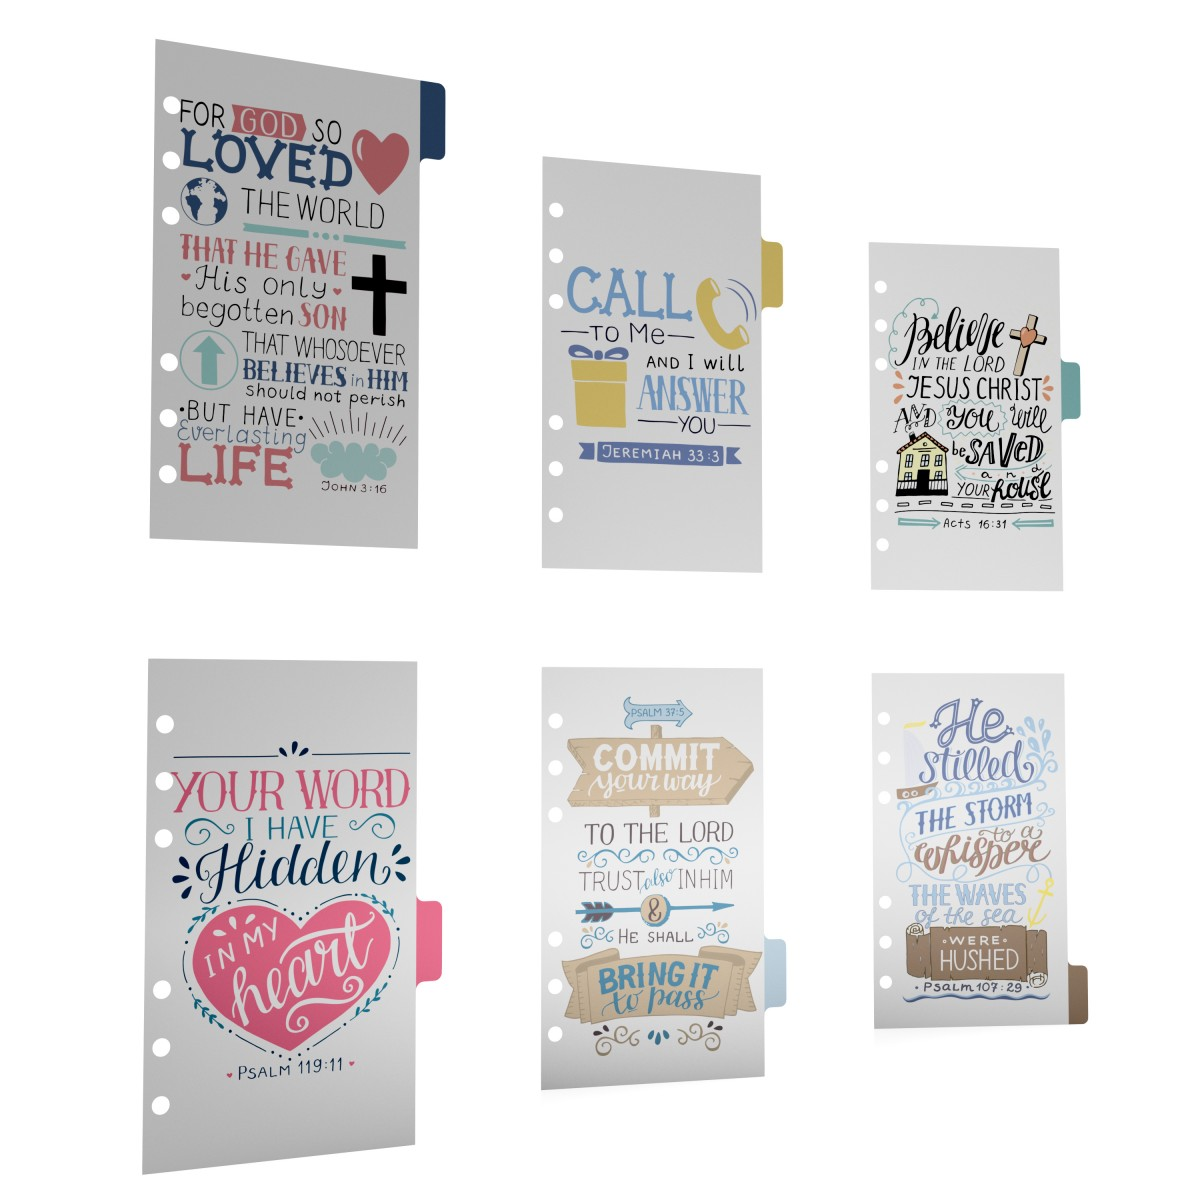 DISCAGENDA 6 SECTION PLASTIC DIVIDERS BIBLE VERSES